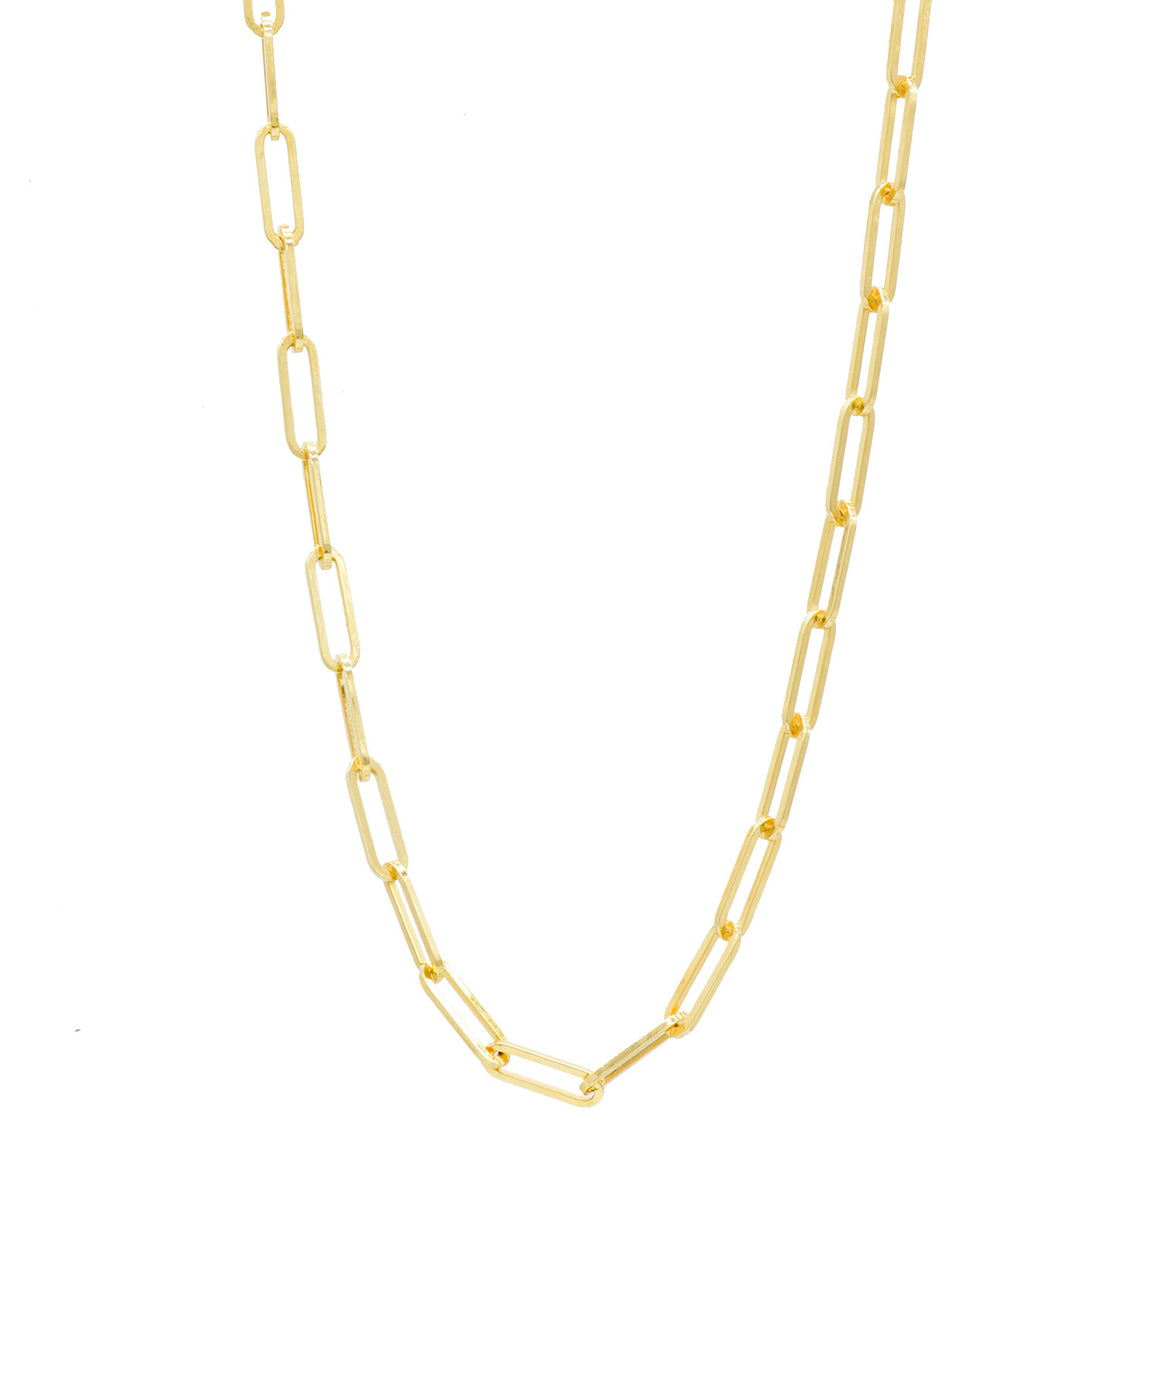 Paper Clip Chain in Yellow Gold